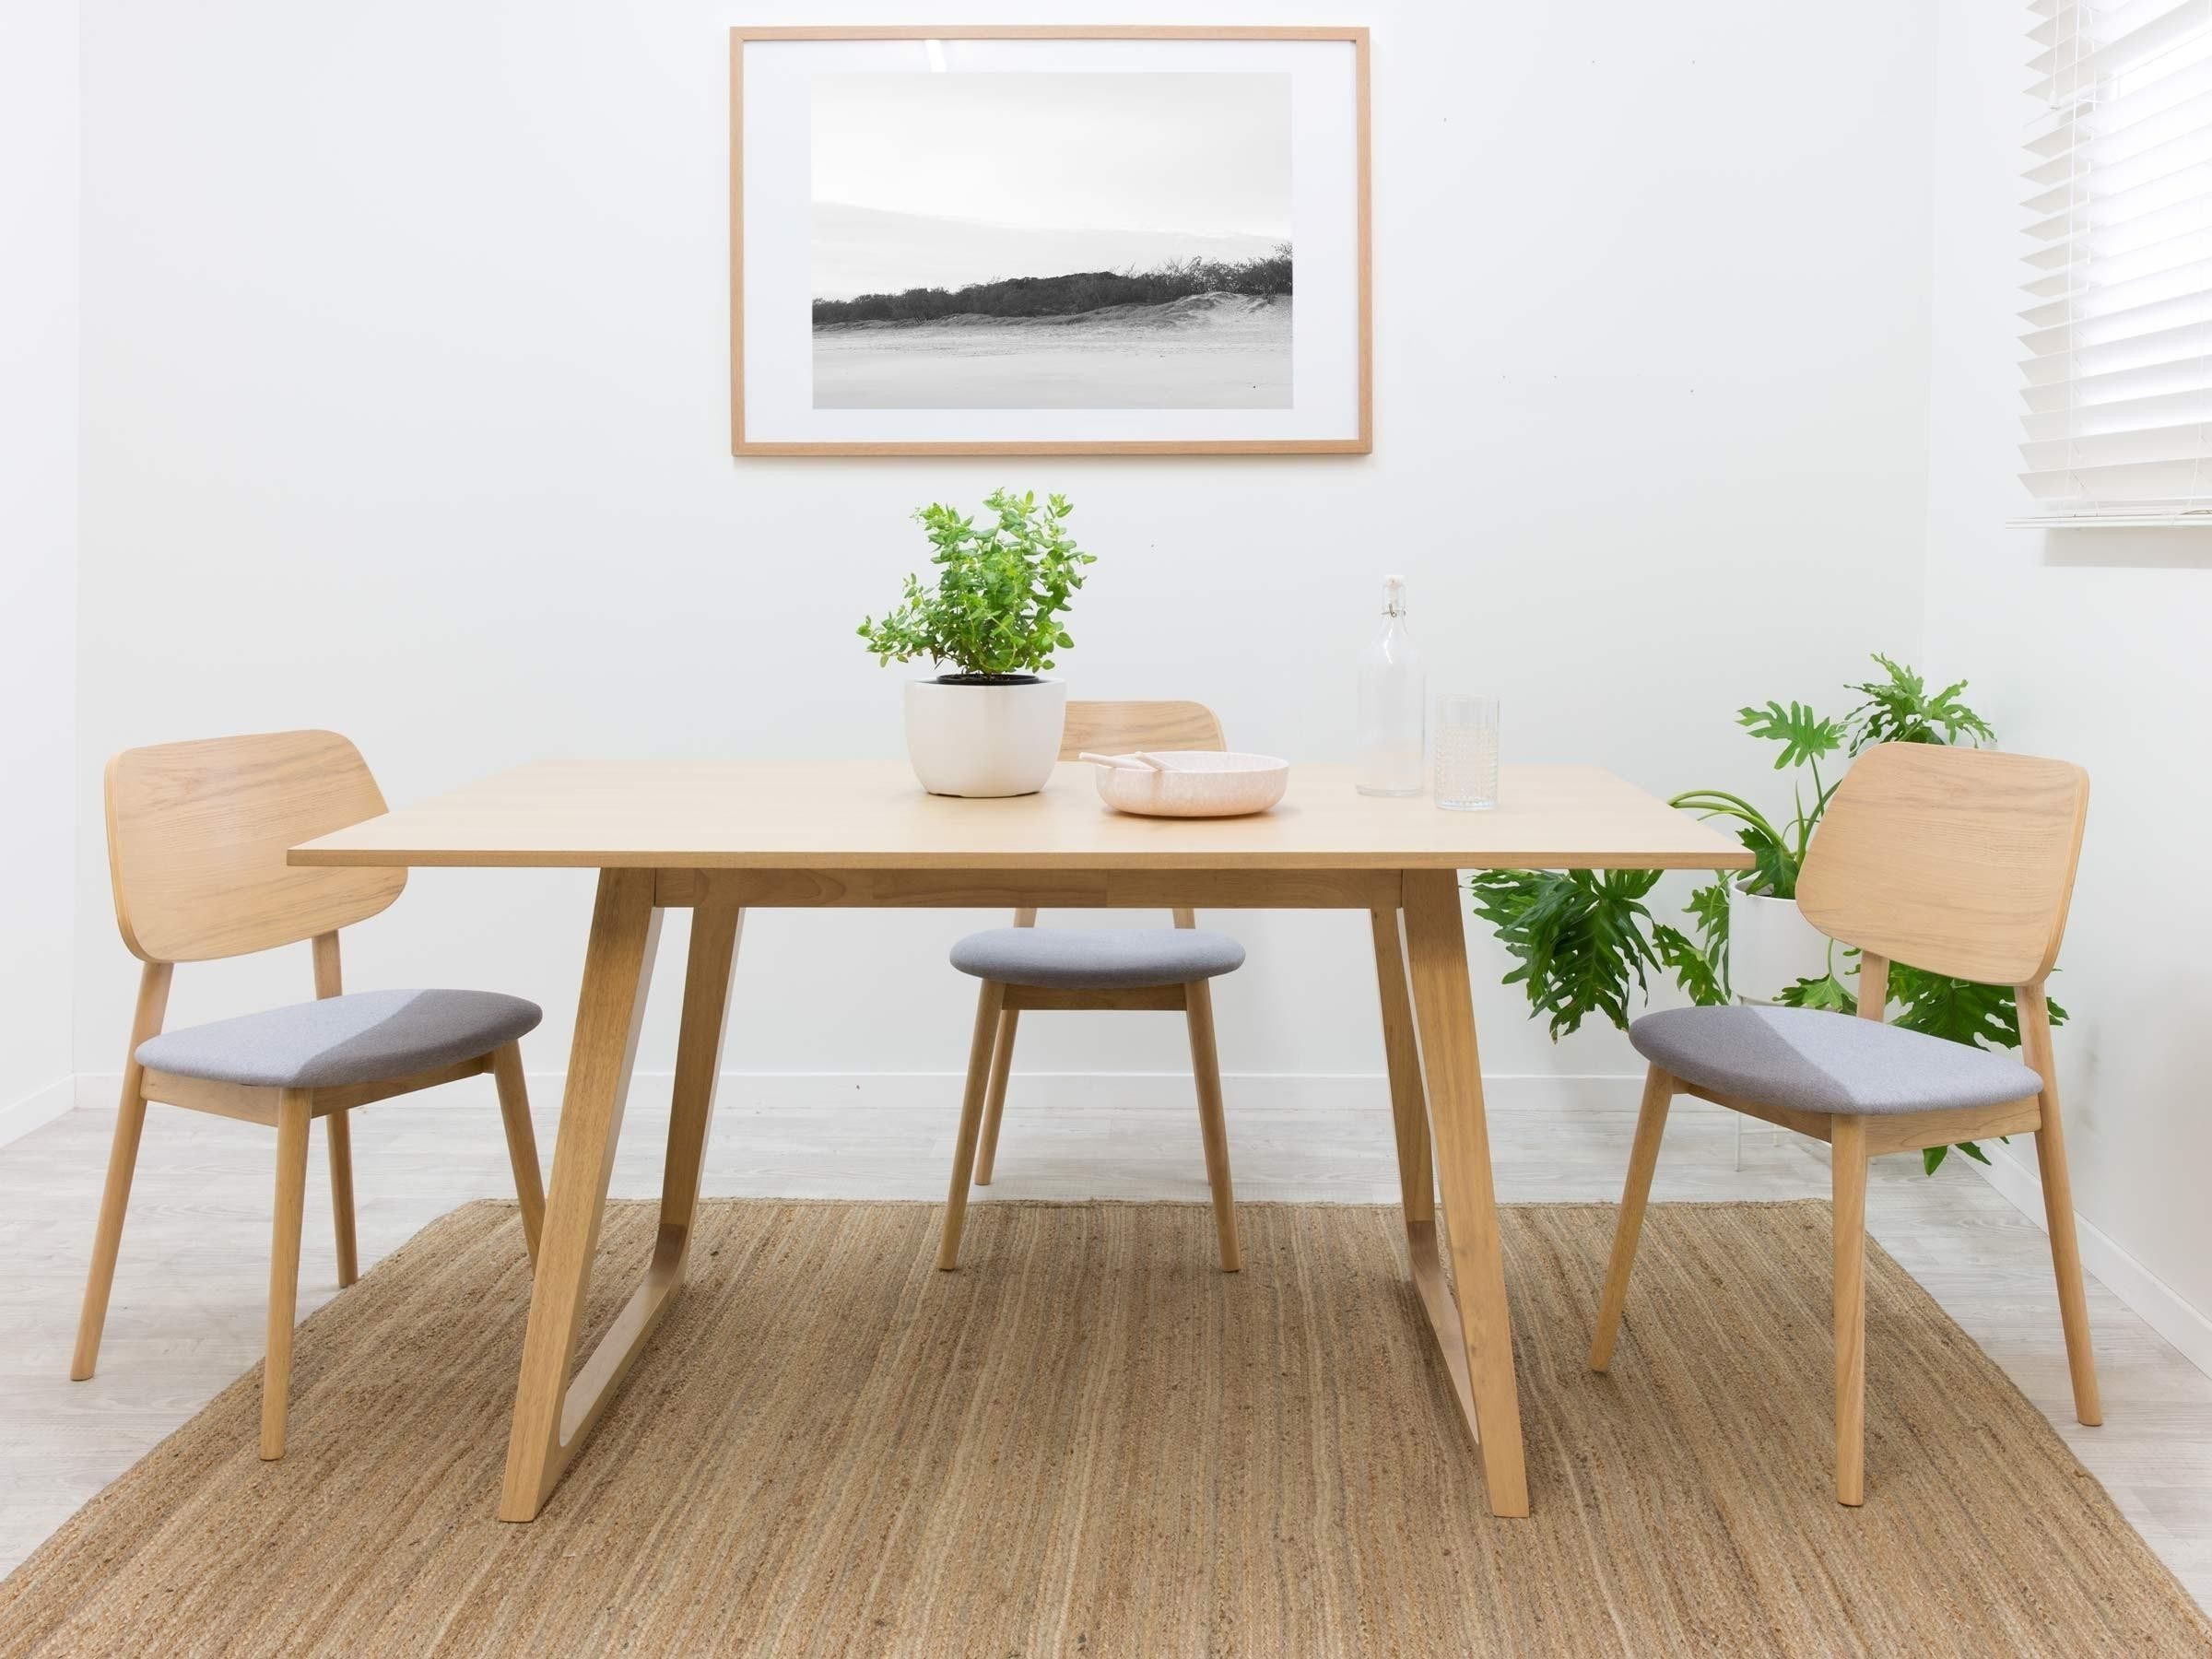 Preferred 6 Seater Round Dining Tables Throughout The 24 Elegant Solid Oak Round Dining Table 6 Chairs (View 11 of 25)